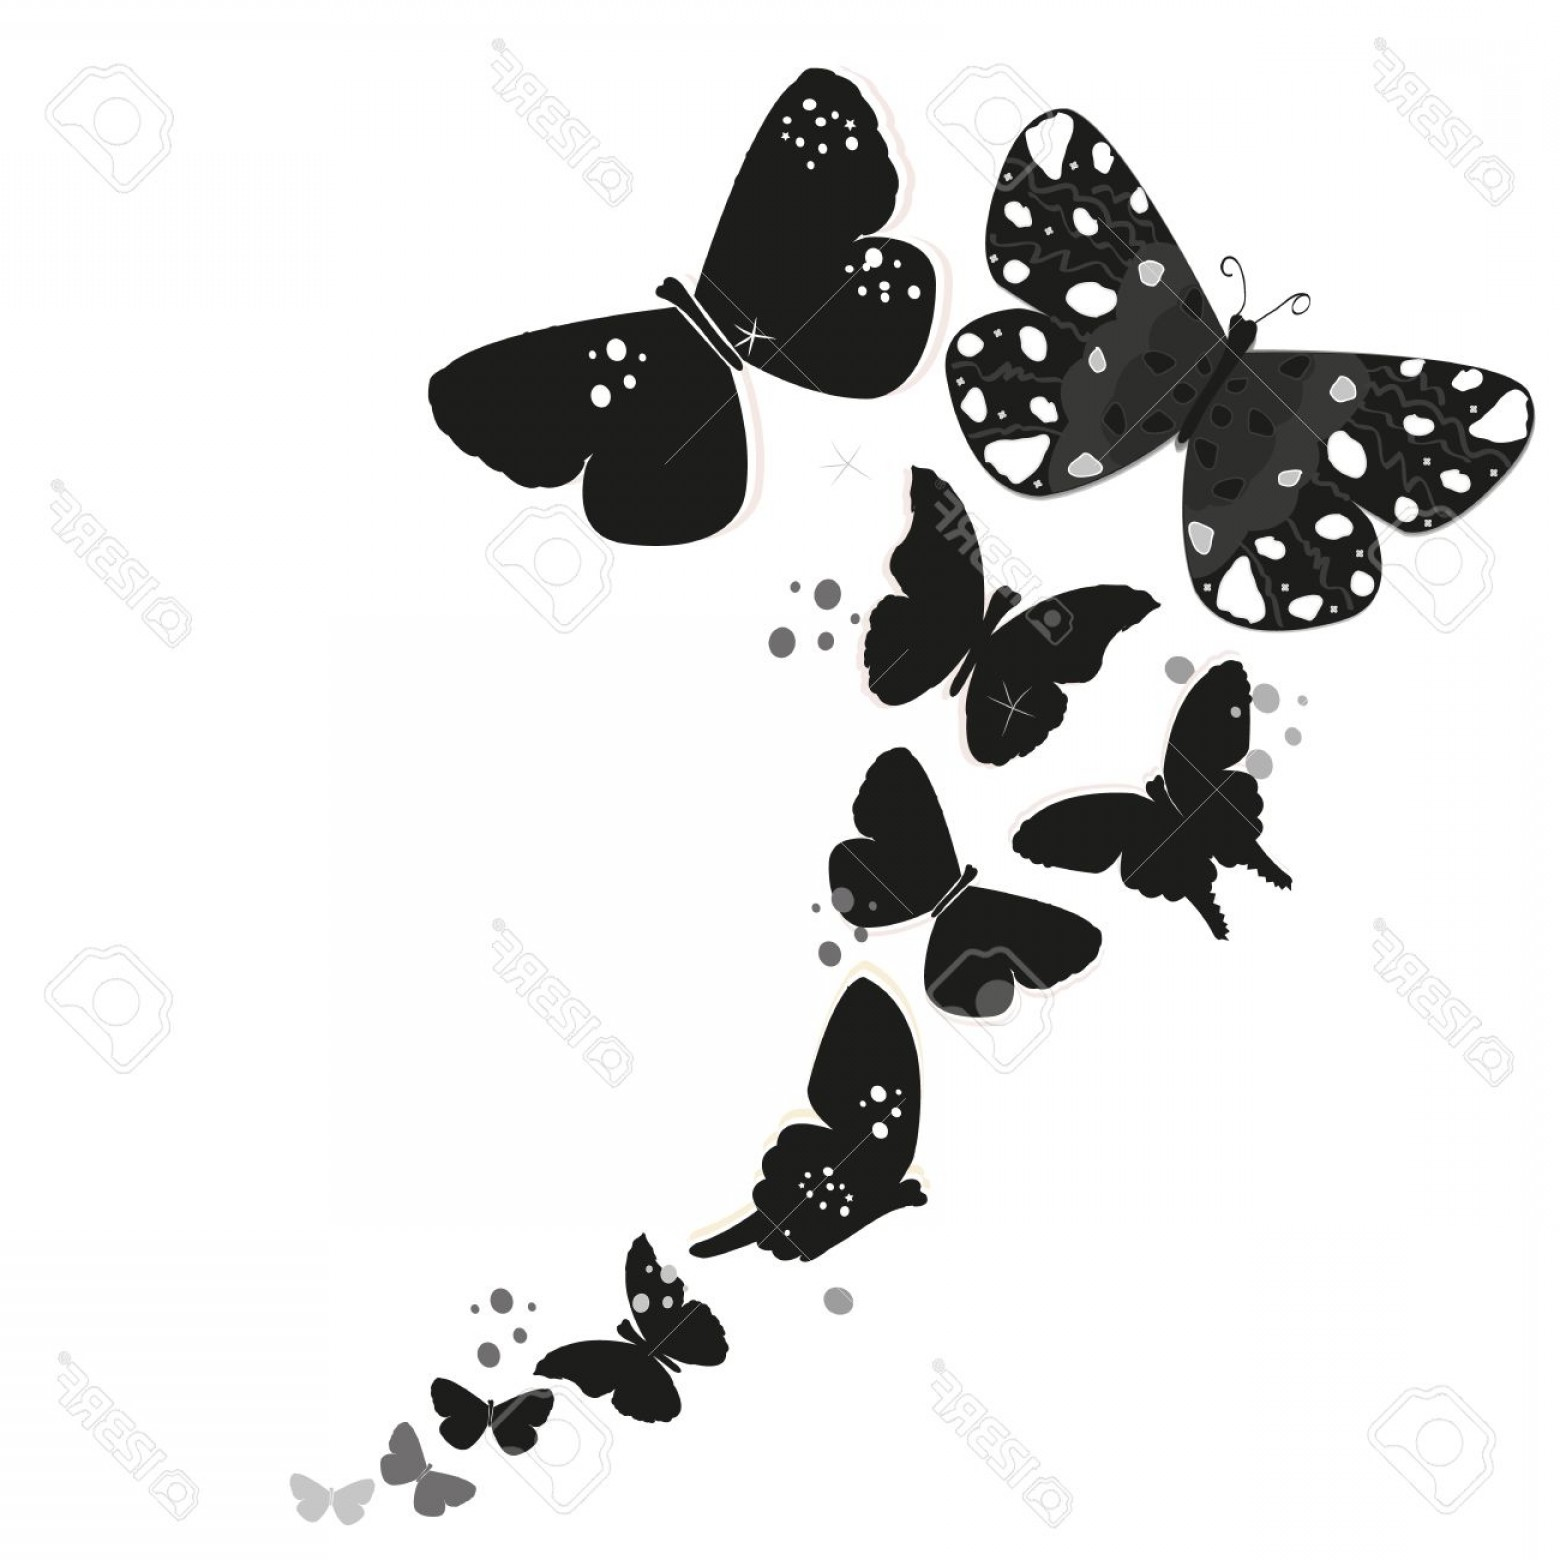 Butter Fly And Flower Vector Black And White: Photostock Vector Black Butterfly Design And Abstract Decorative Flowers Vector Background